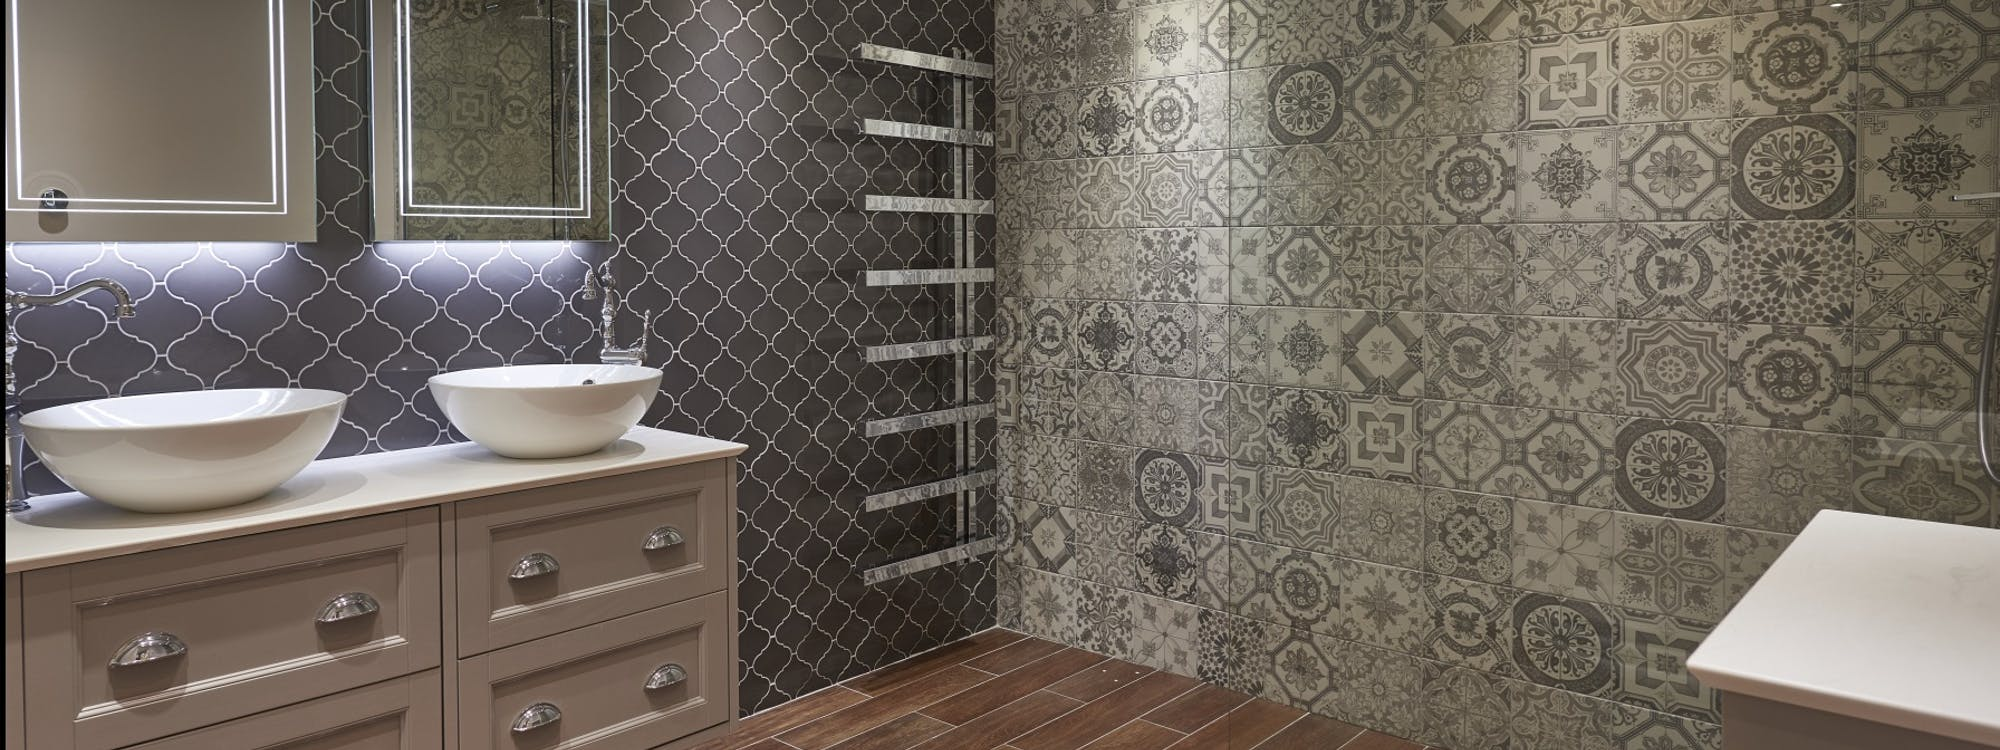 Occupying a 3000sqmt space our Harrogate Bathroom Showroom features 25 dedicated displays